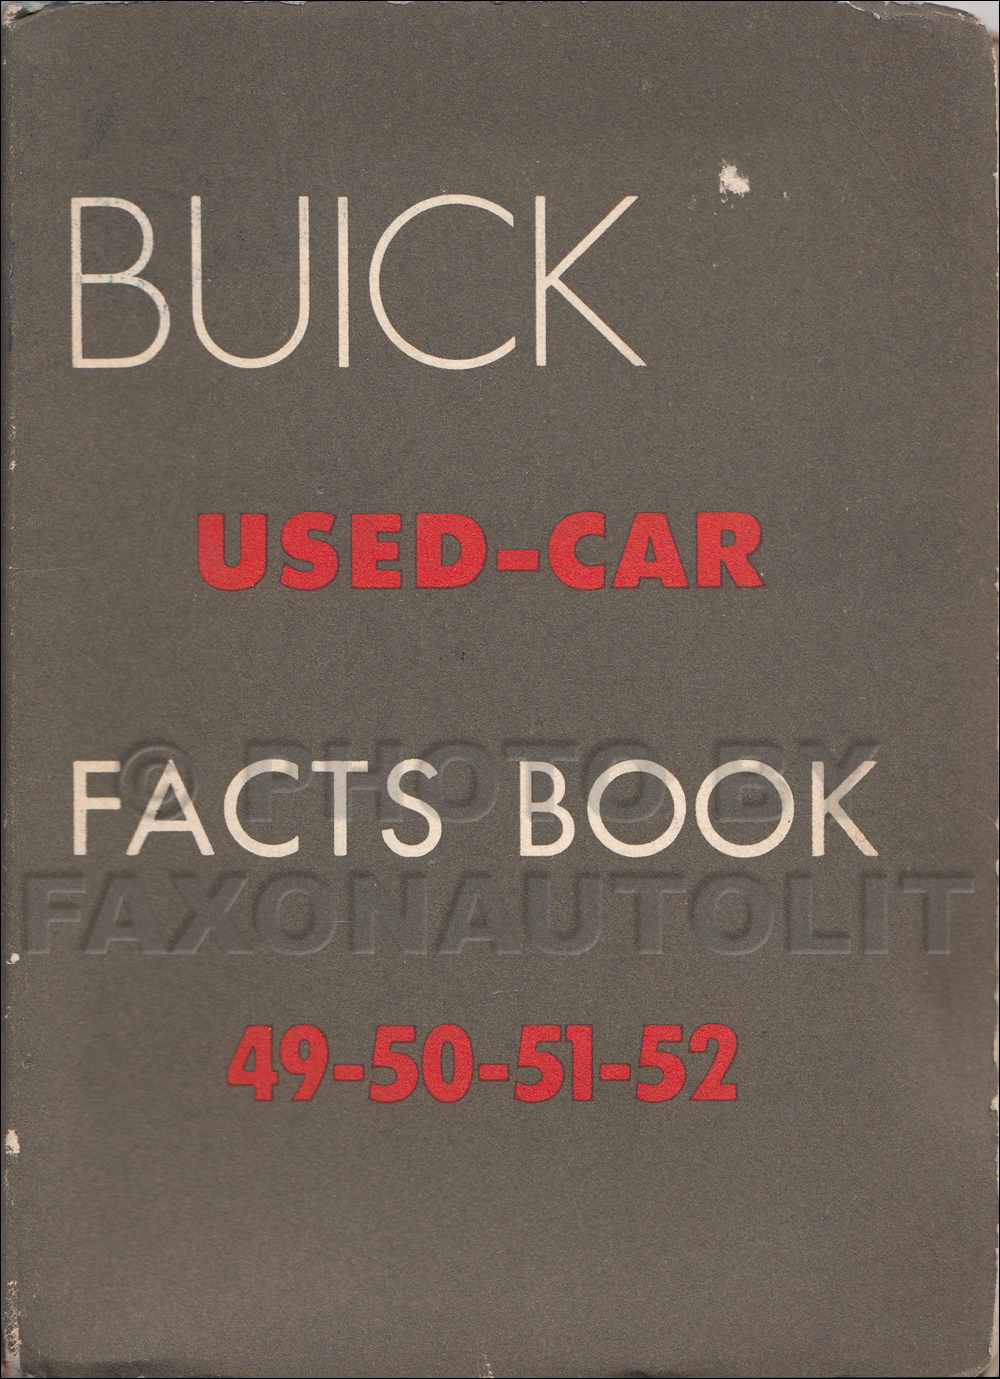 1949-1952 Buick Used Car Facts Book Original